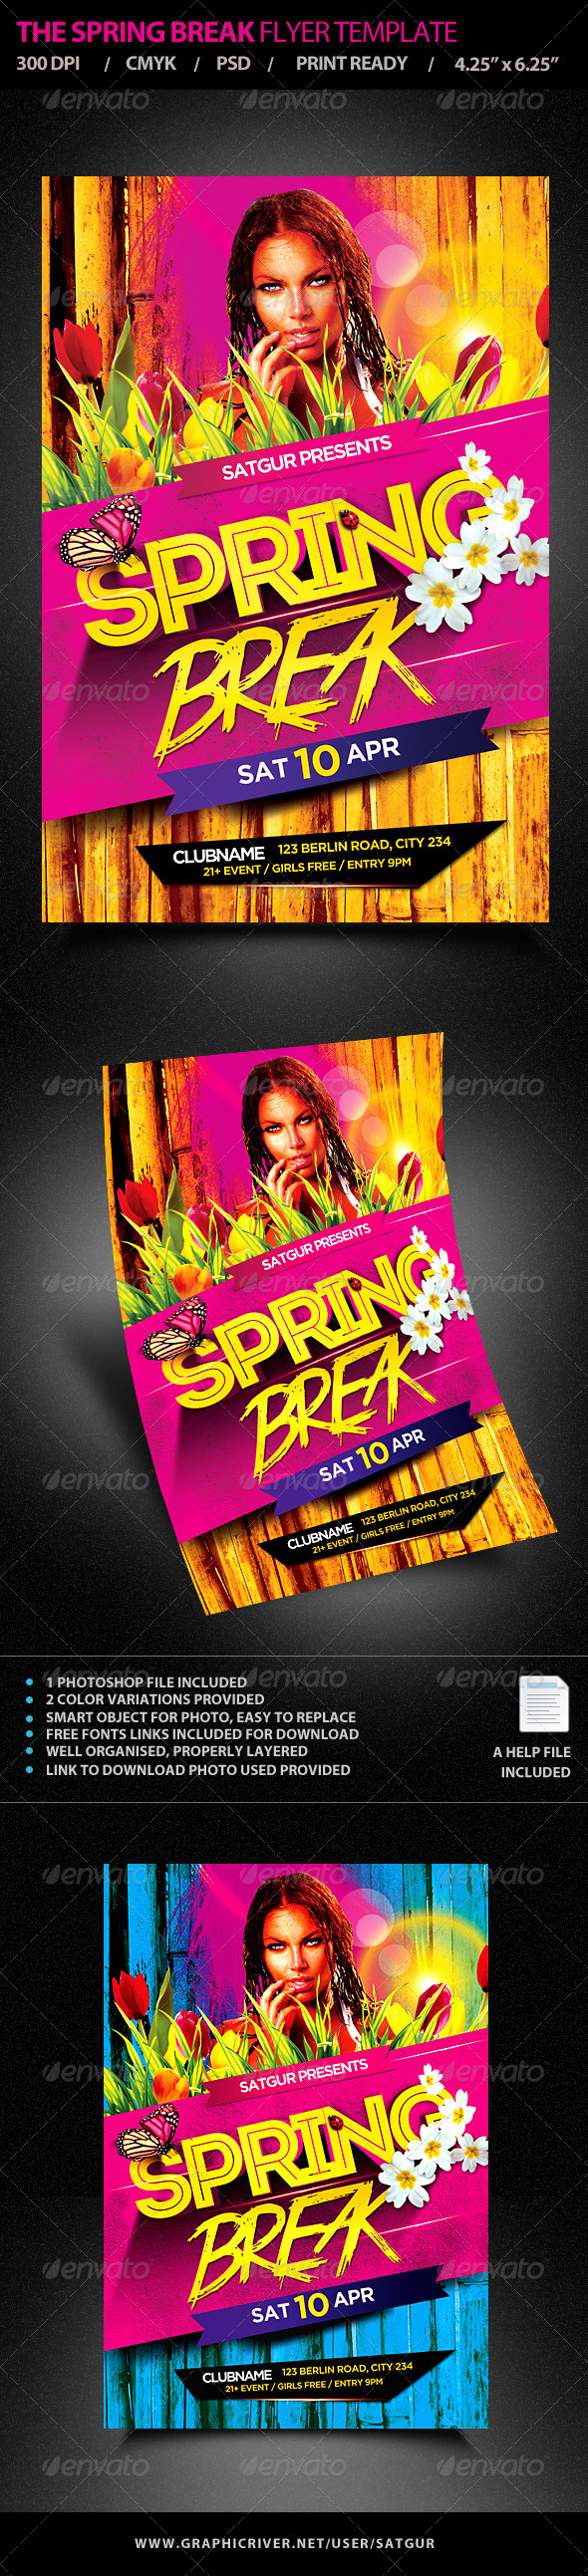 Spring Break Party Flyer Template PSD